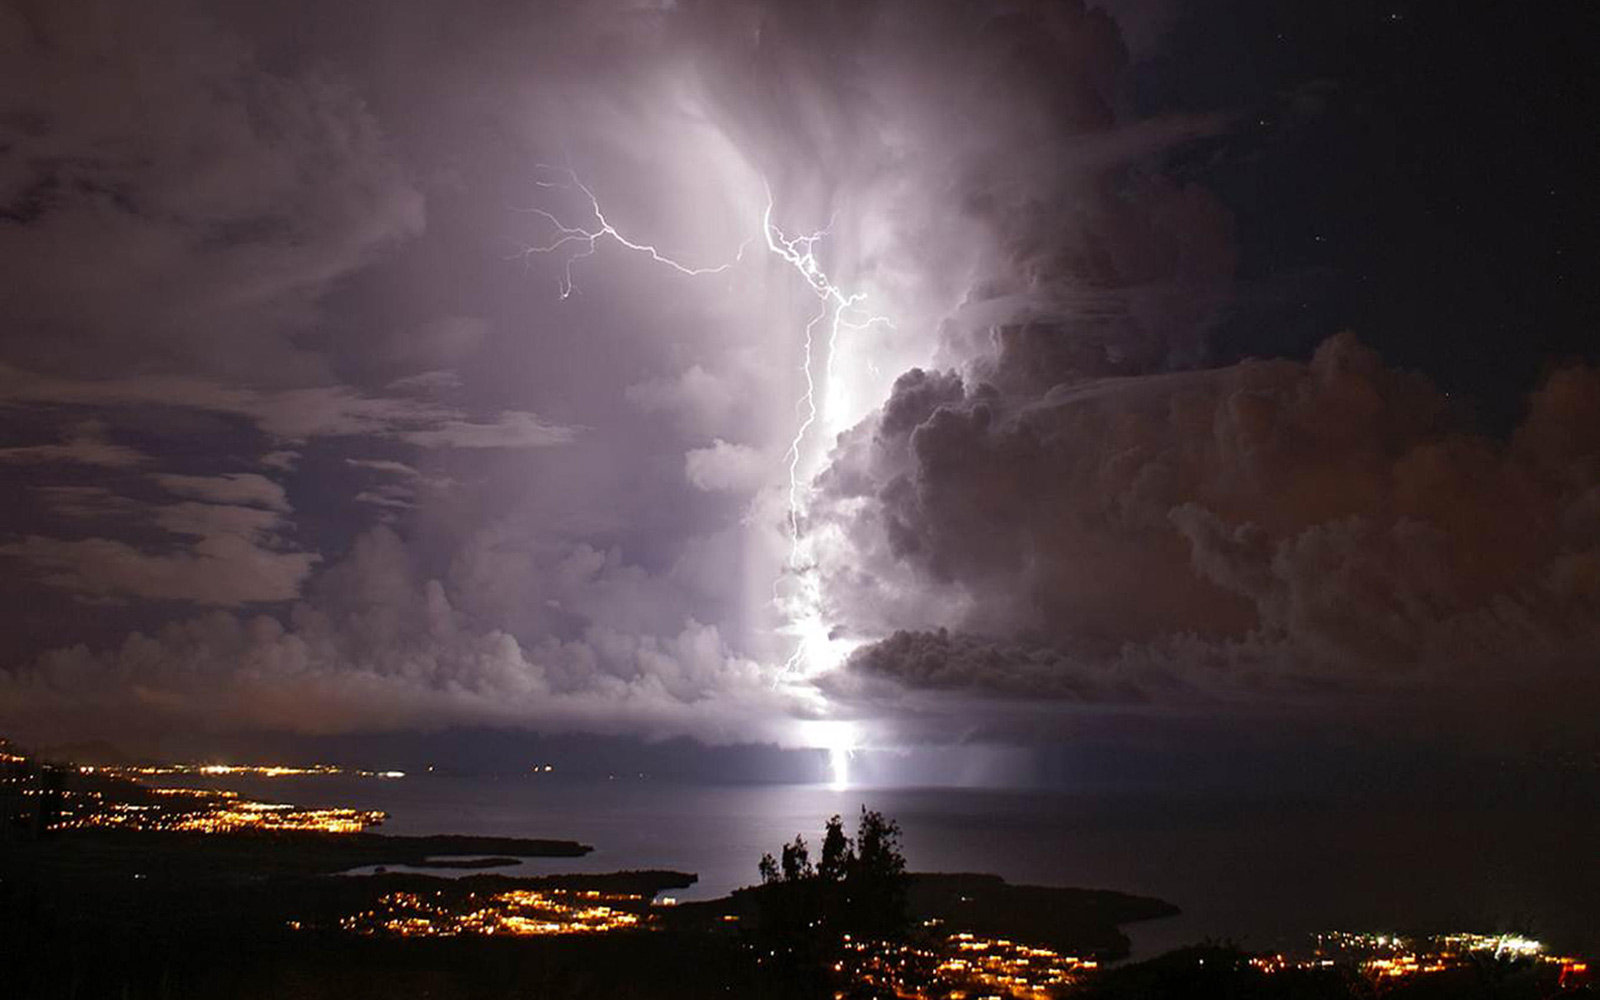 The Neverending Storm, Lake Maracaibo, Venezuela